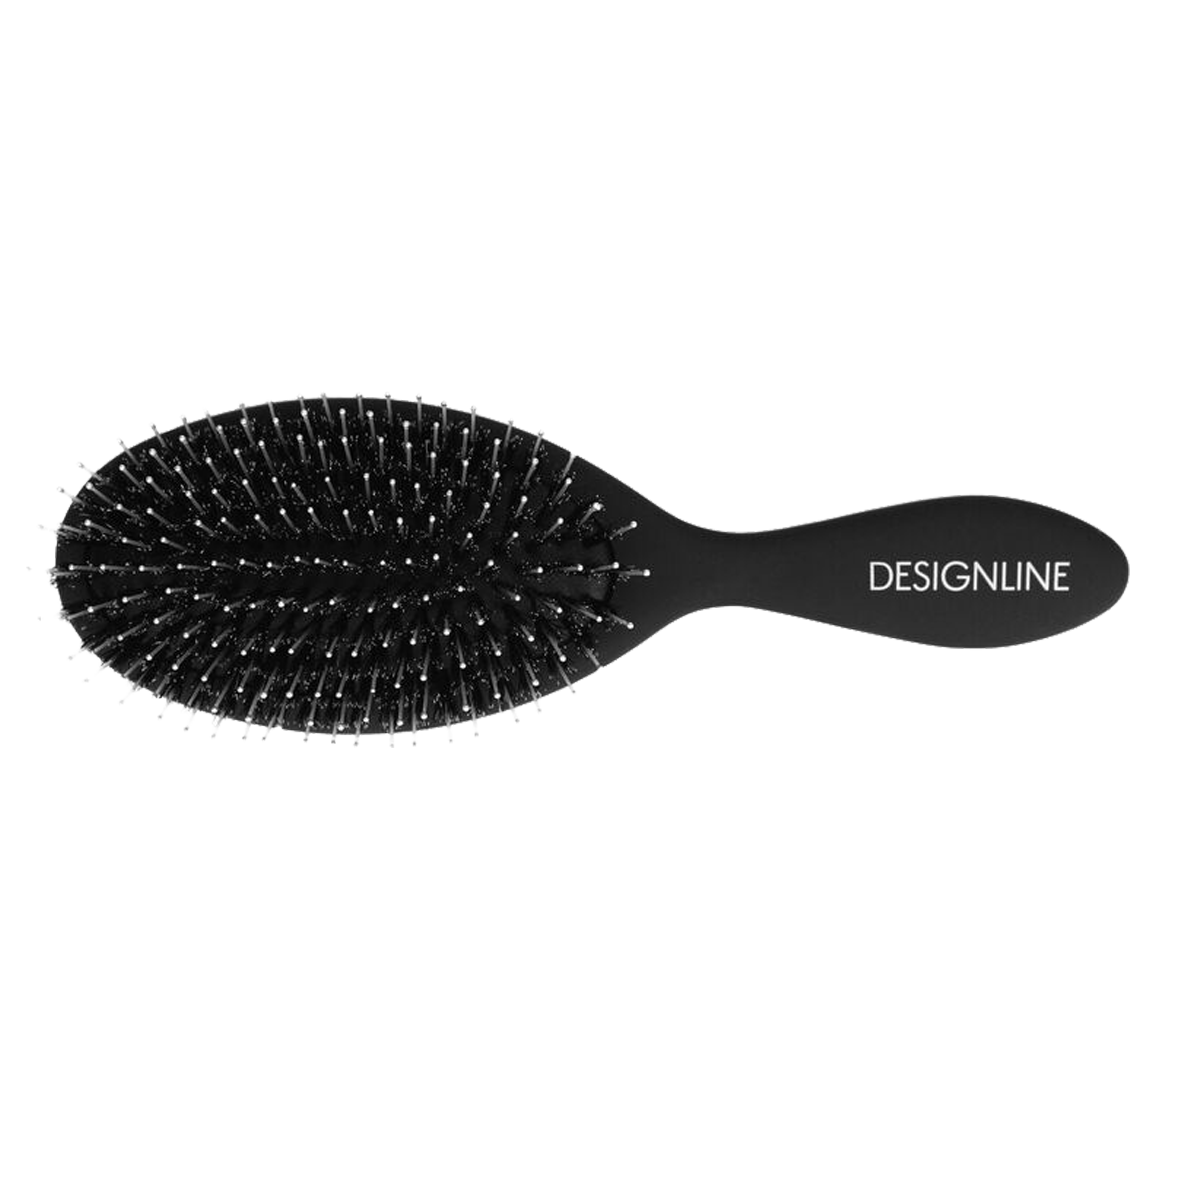 DESIGNLINE Sculpting Brush